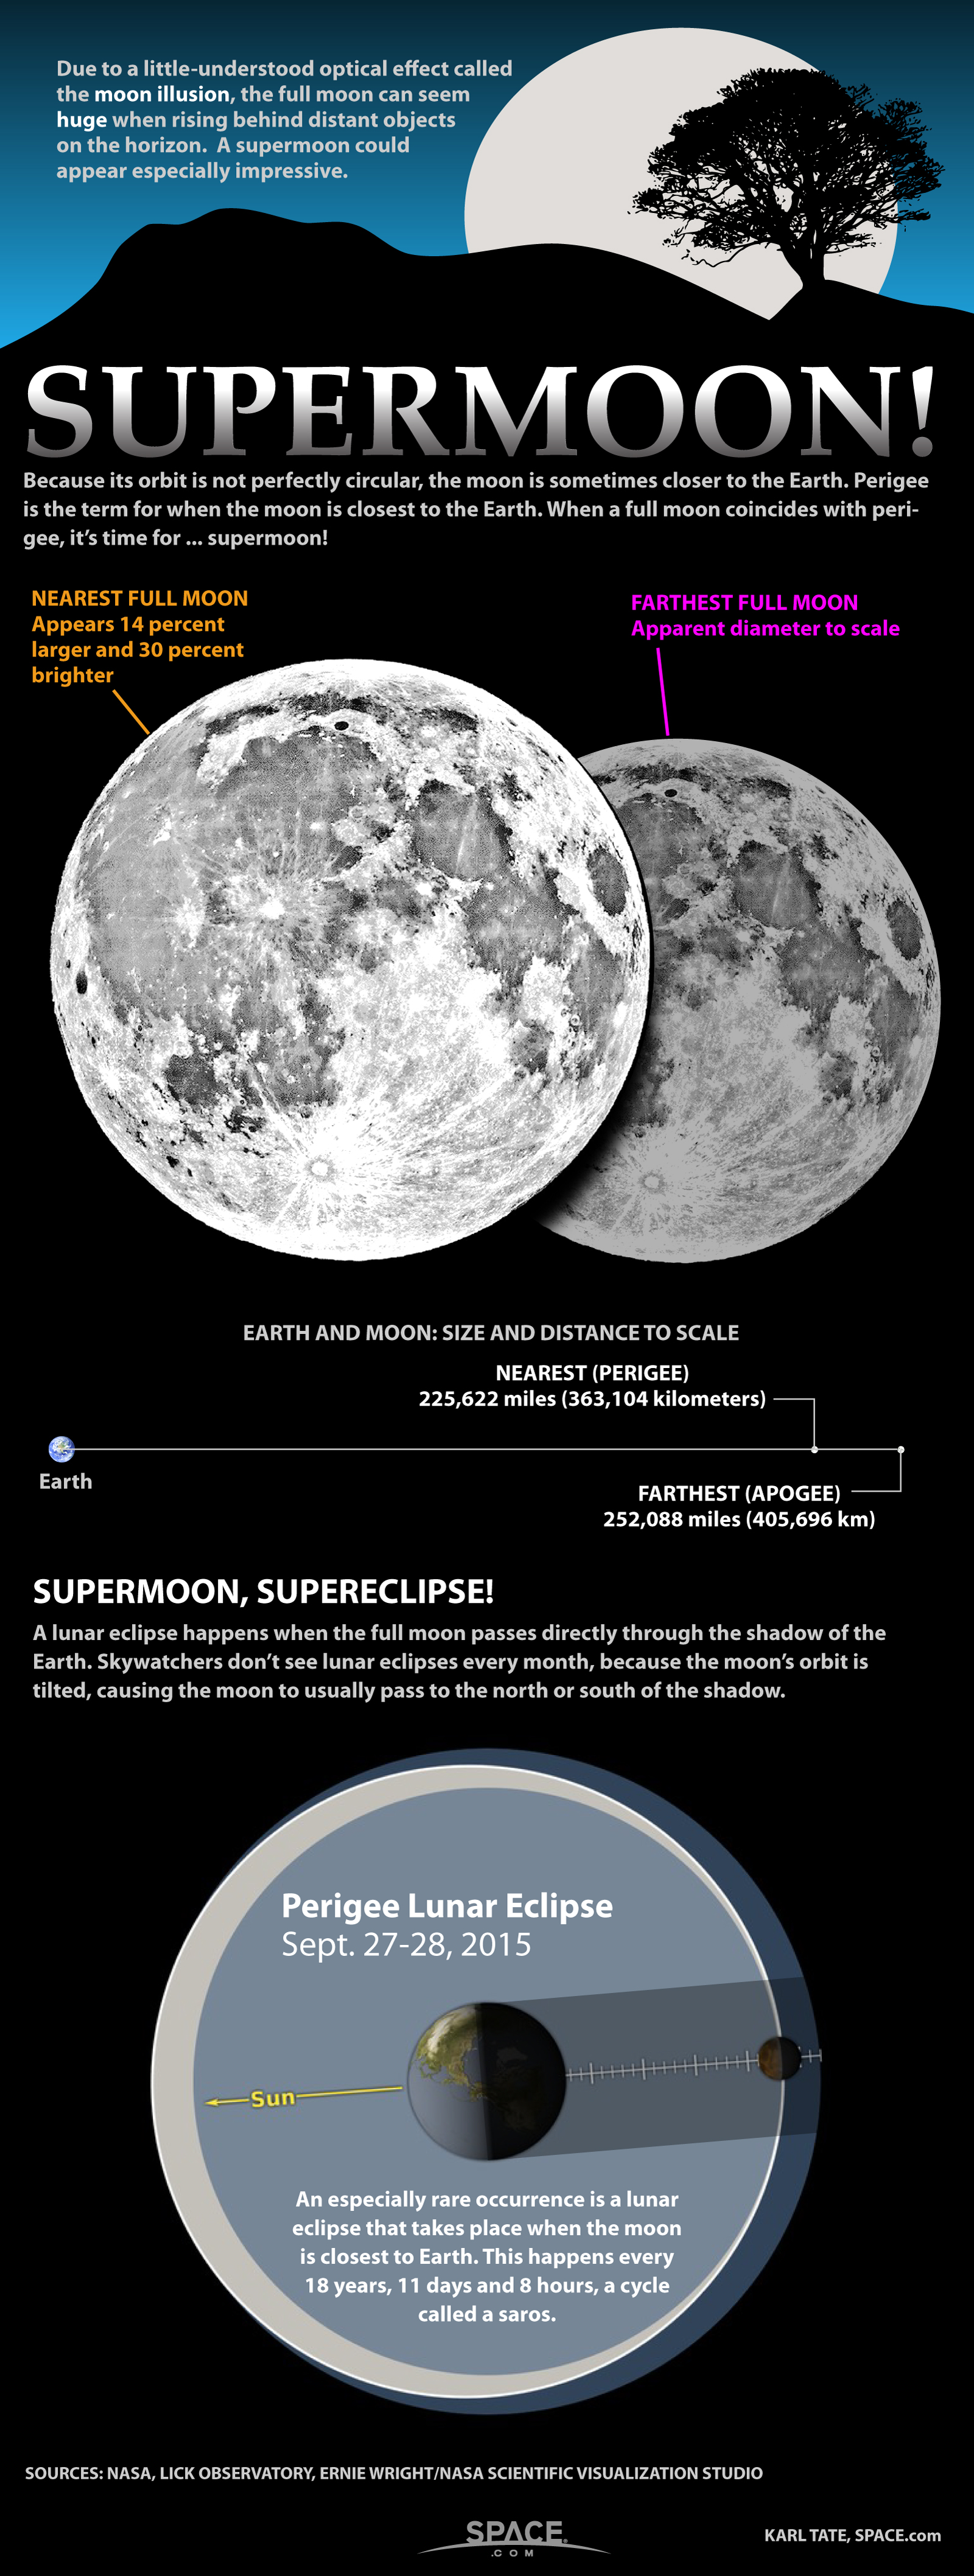 What Makes a 'Supermoon' Full Moon Super